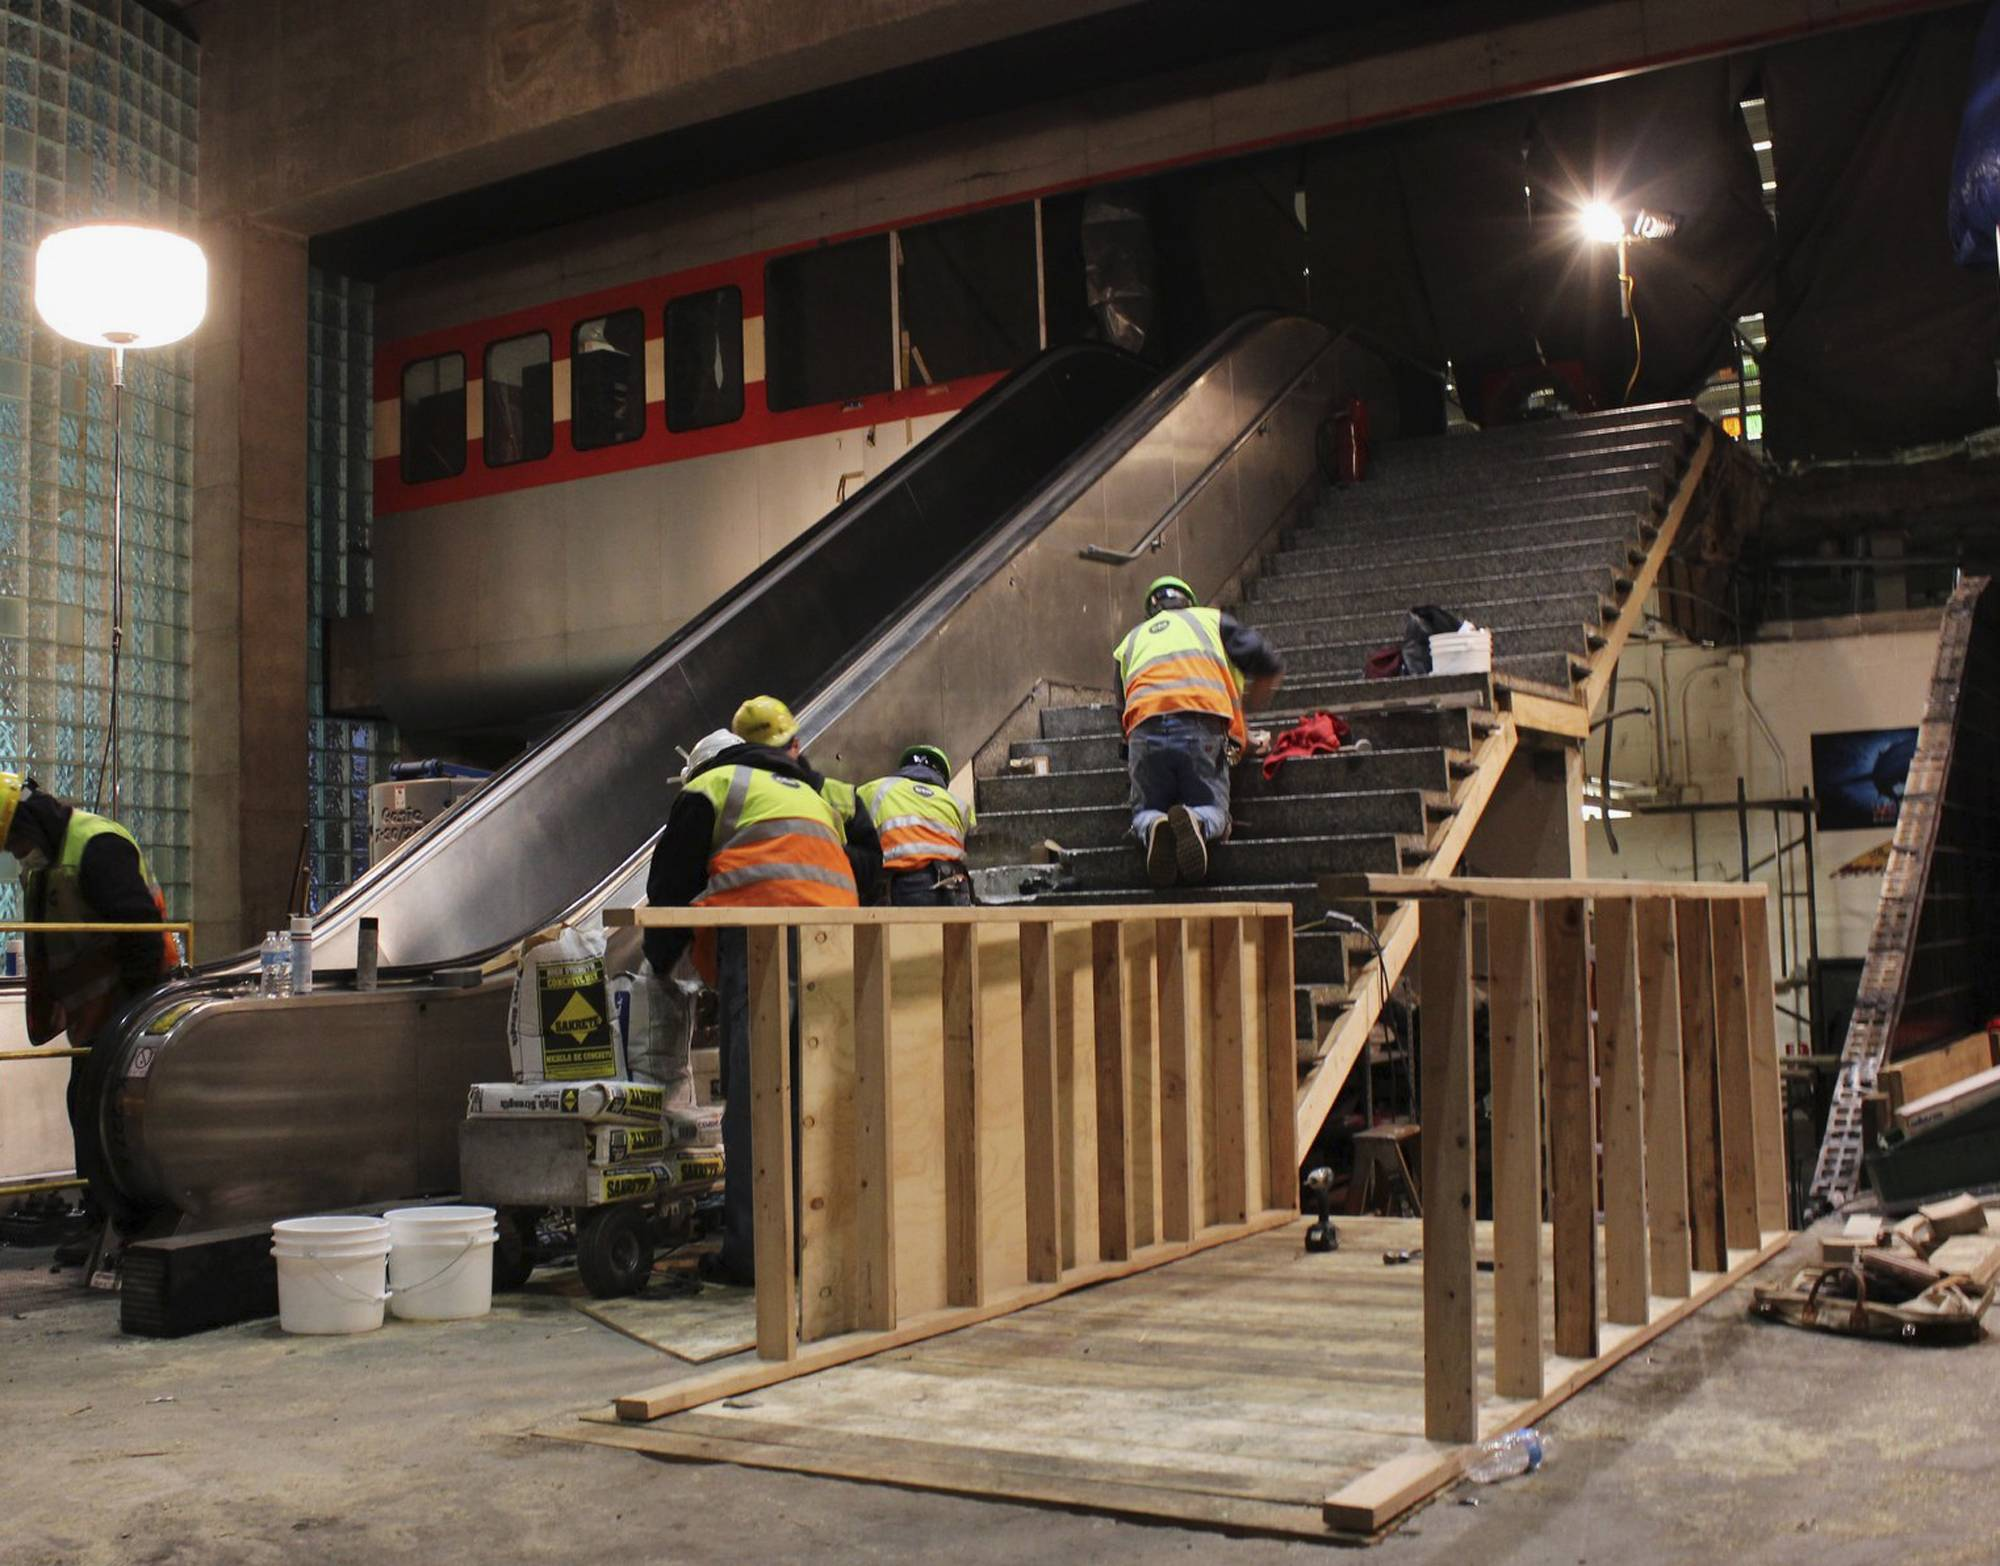 This photo provided by the Chicago Transit Authority shows workers on March 28 repairing the escalator and surrounding area where a CTA commuter train crashed at O'Hare International Airport on Monday injuring 32 passengers. Service to O'Hare was restored Sunday afternoon.